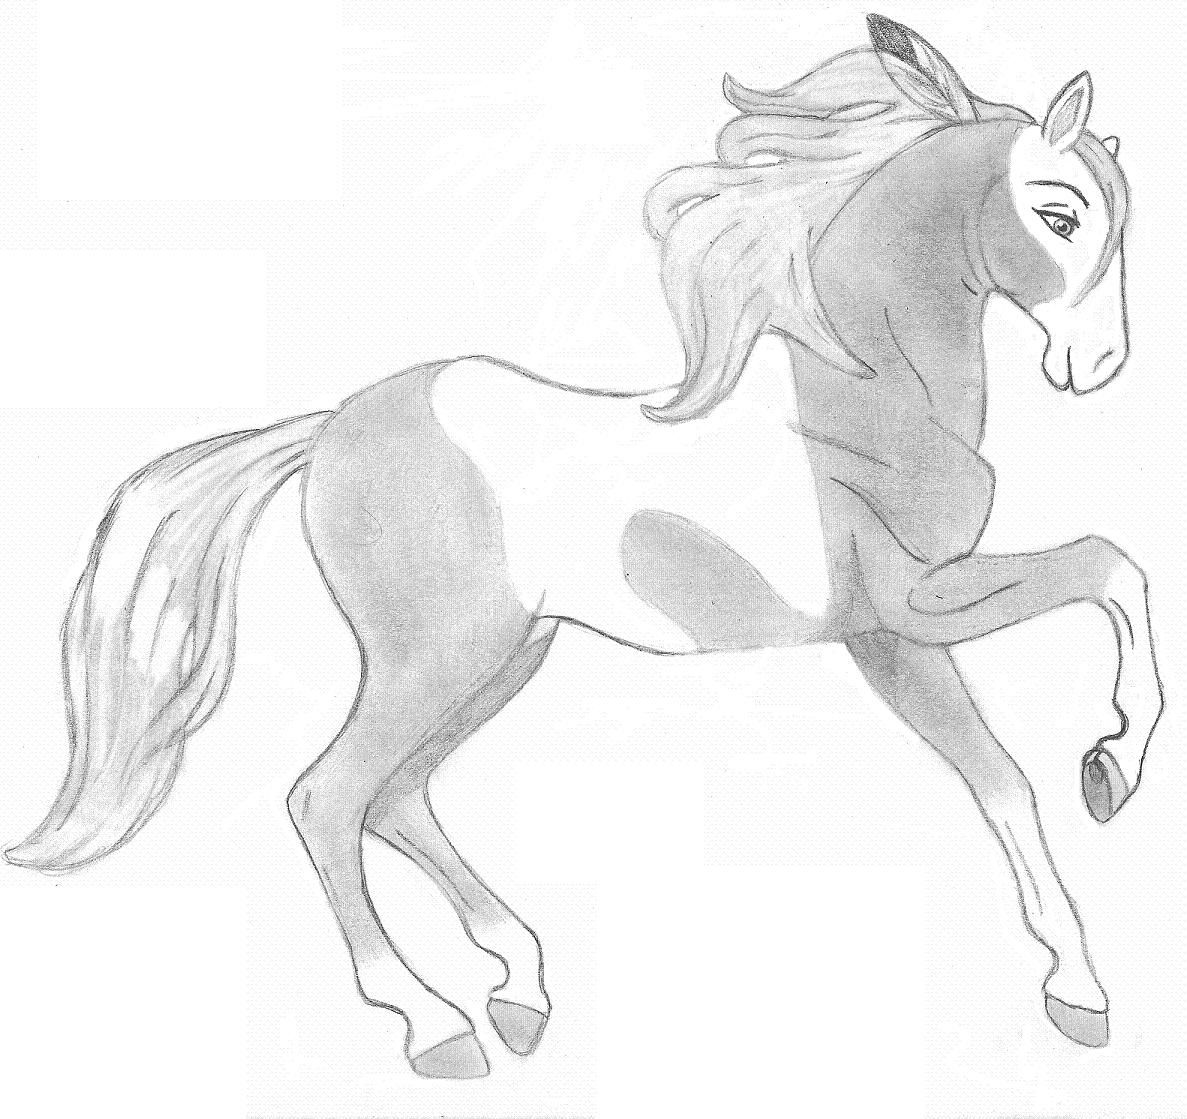 Pin by Elizabeth Peuchen Vivas on Comics | Pinterest | Easy cartoon ... for Horse Cartoon Drawing  565ane